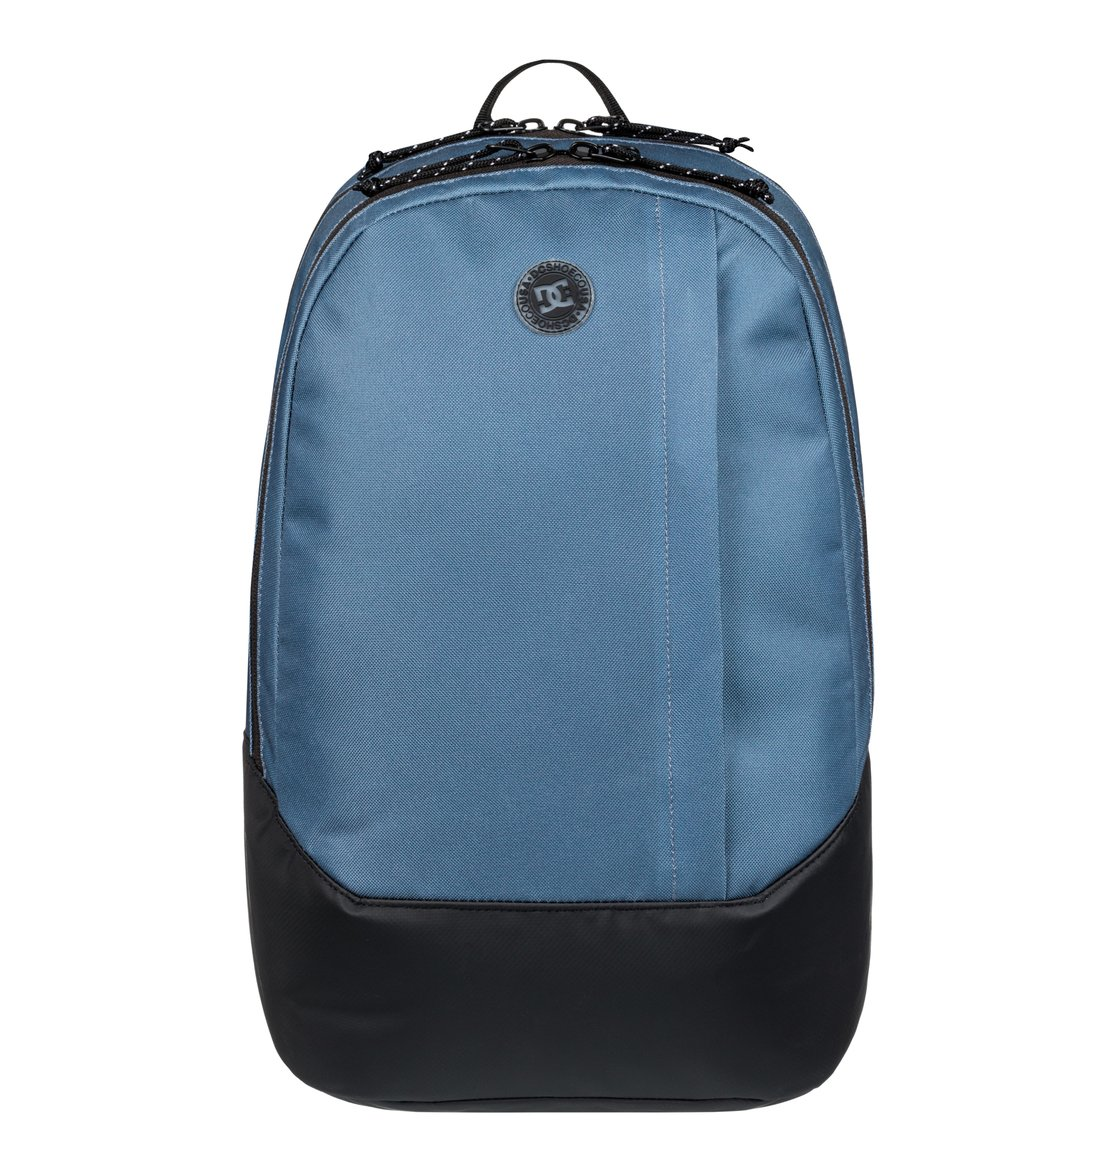 ff8ba02931 0 Punchyard 22L - Medium Backpack EDYBP03175 DC Shoes